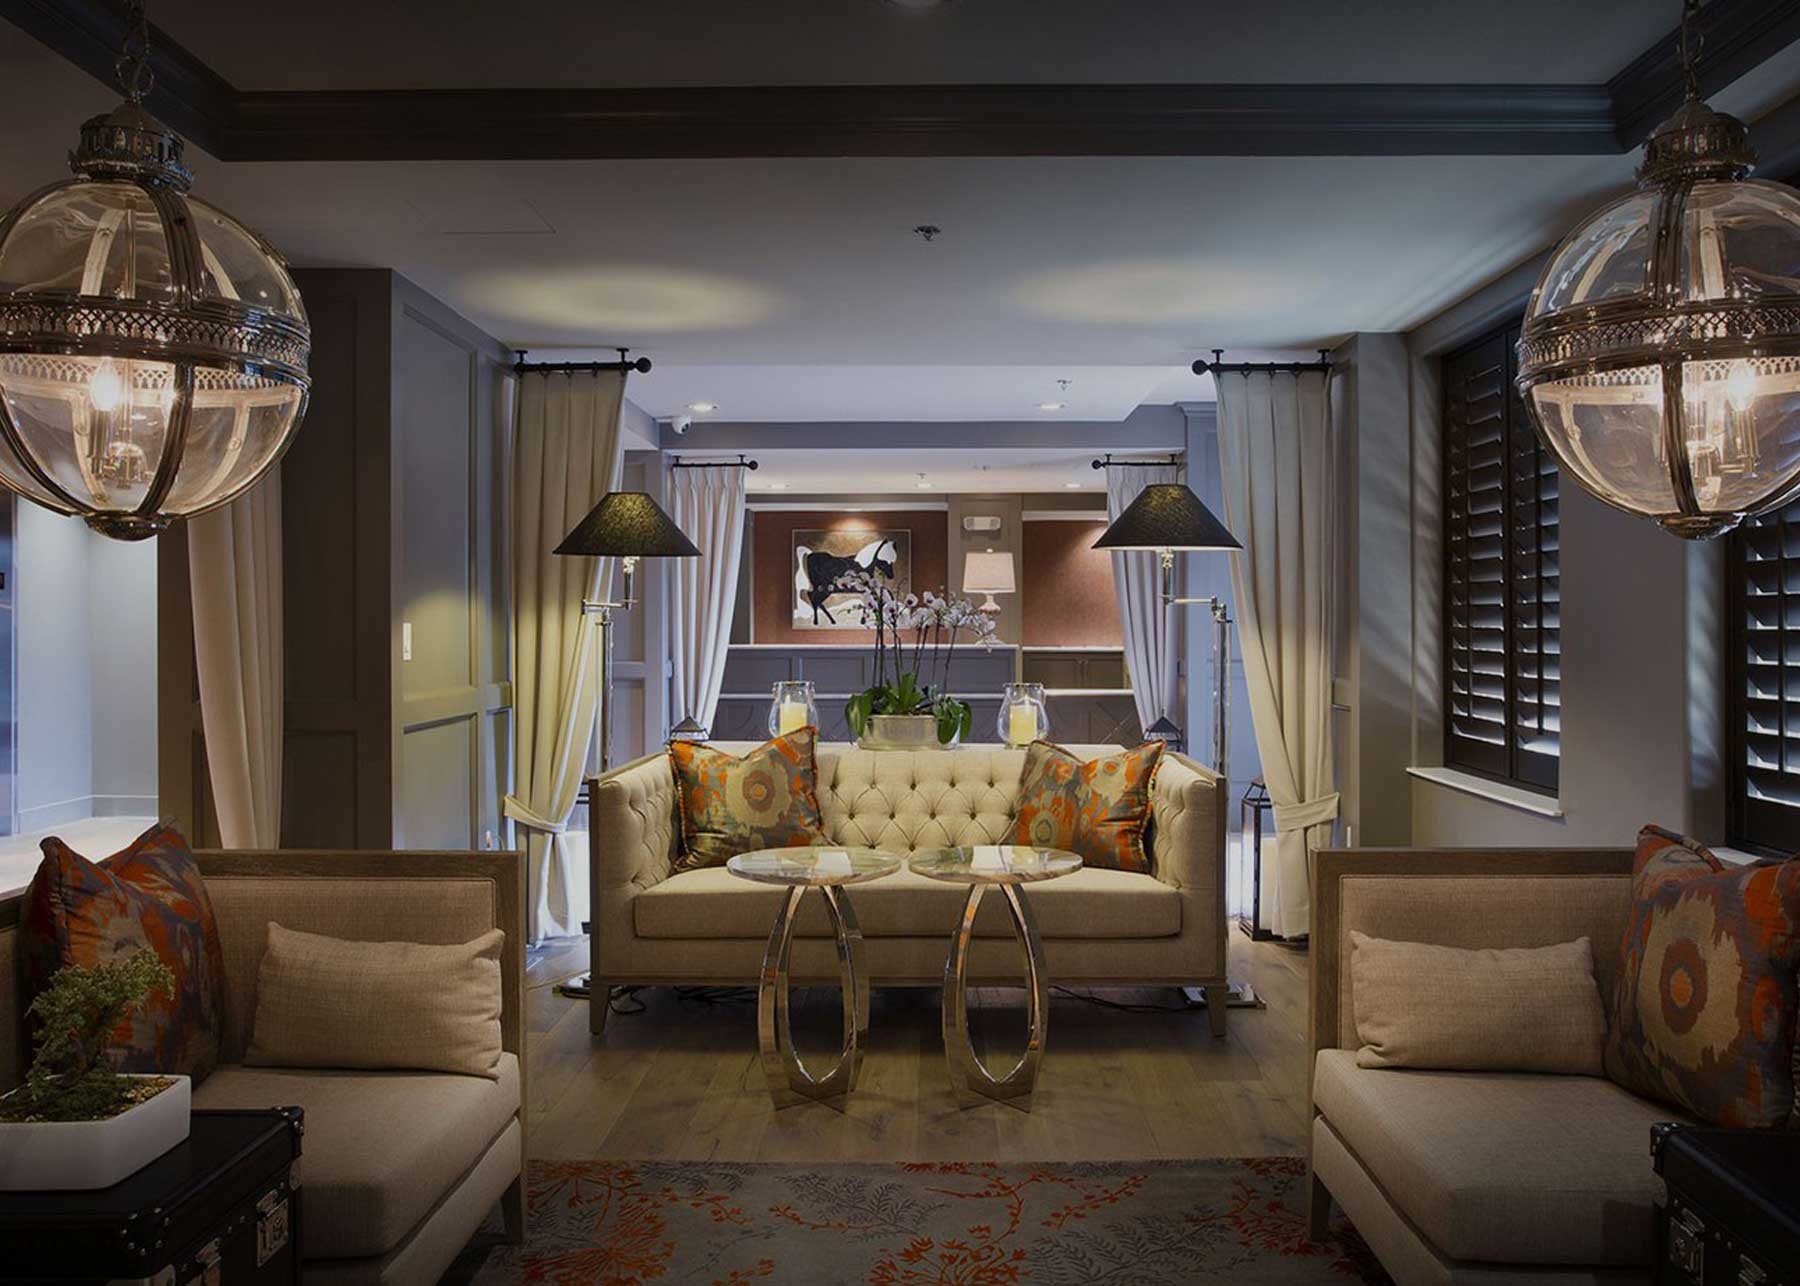 lavish suite sitting area with dim lights and a centre couch